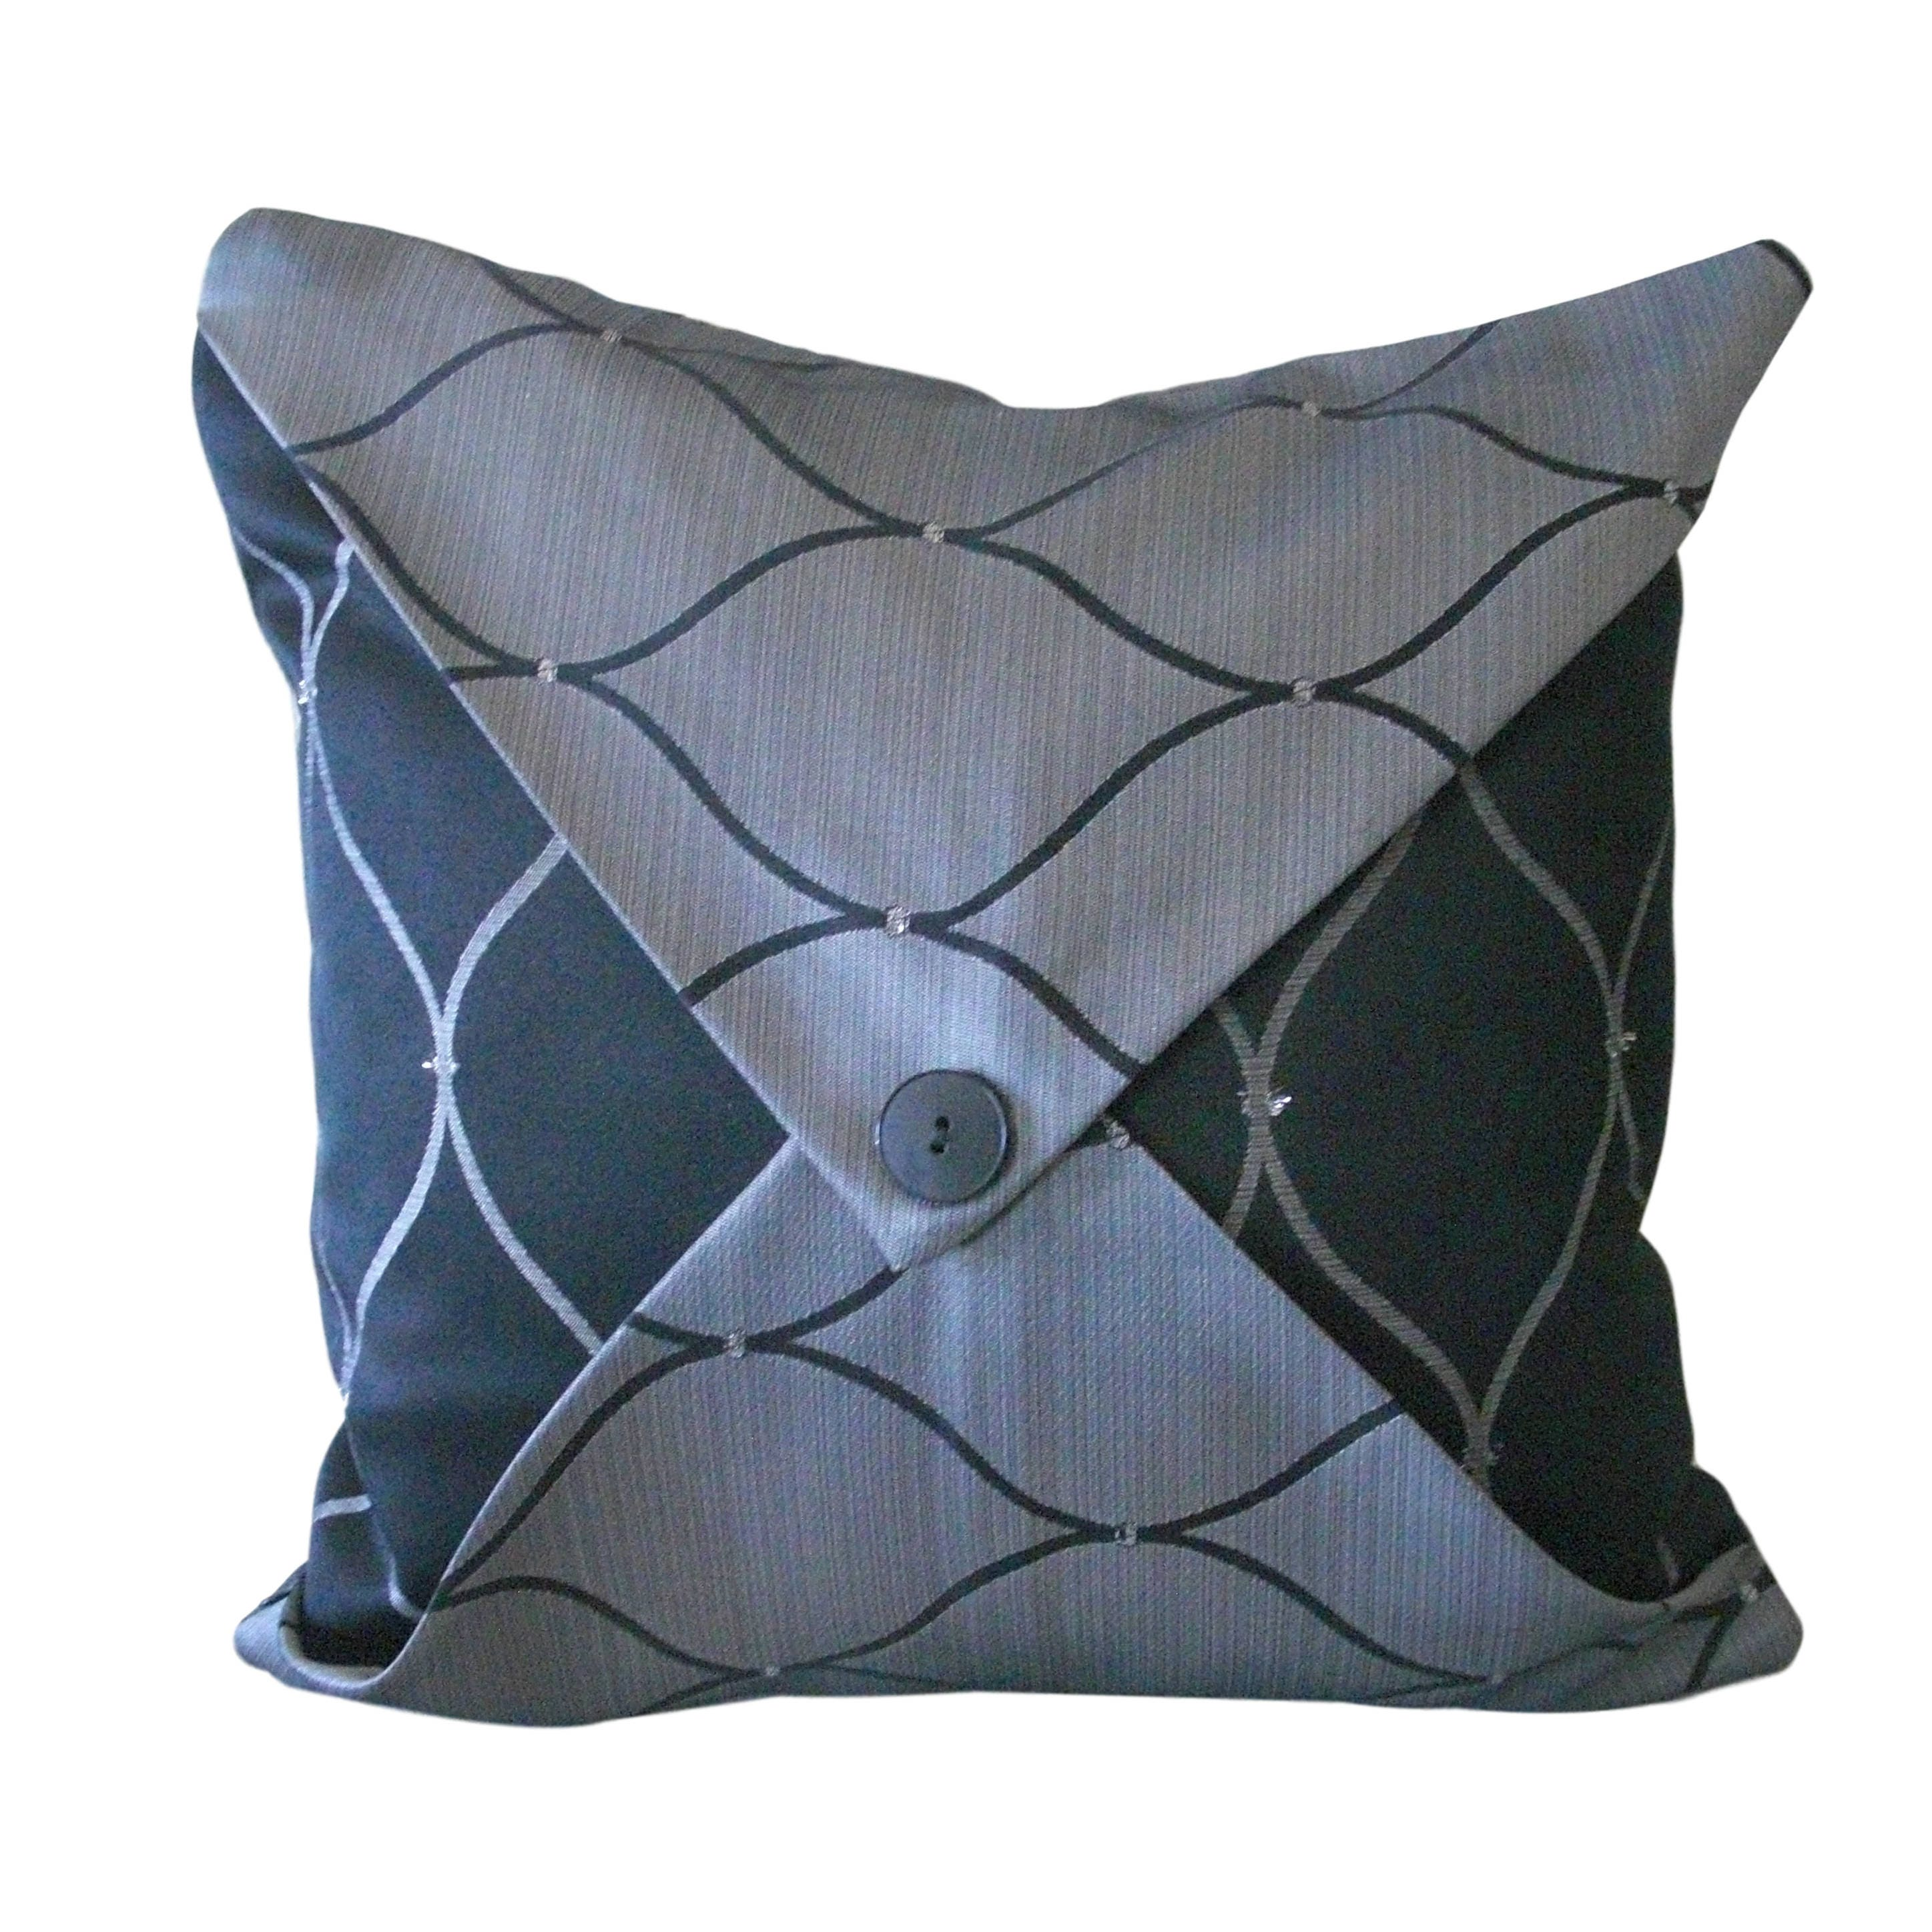 Kuwaha Jacquard Decorative Accent Throw Pillow Covers; Gray and Black